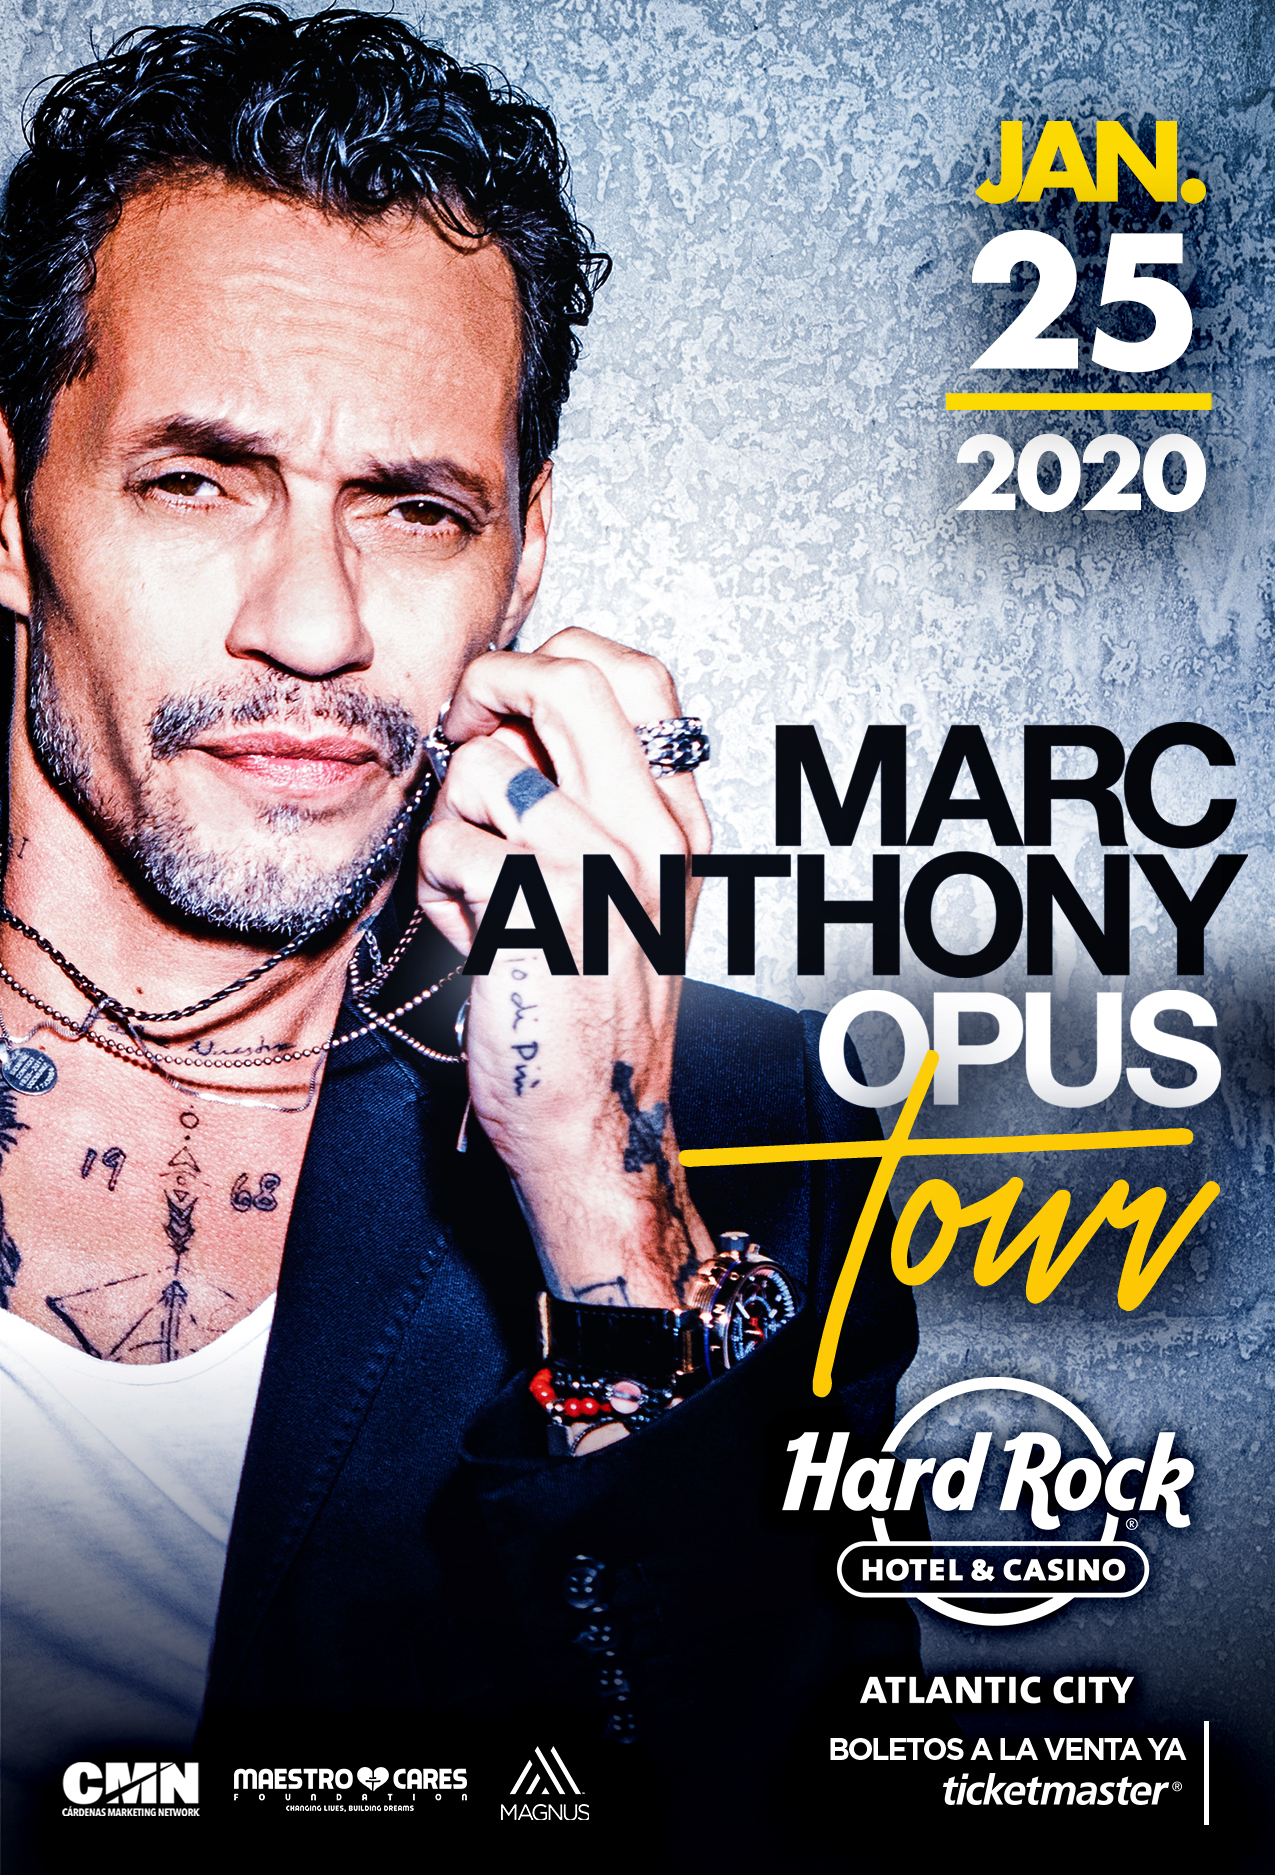 Marc Anthony Opus Tour January 25th